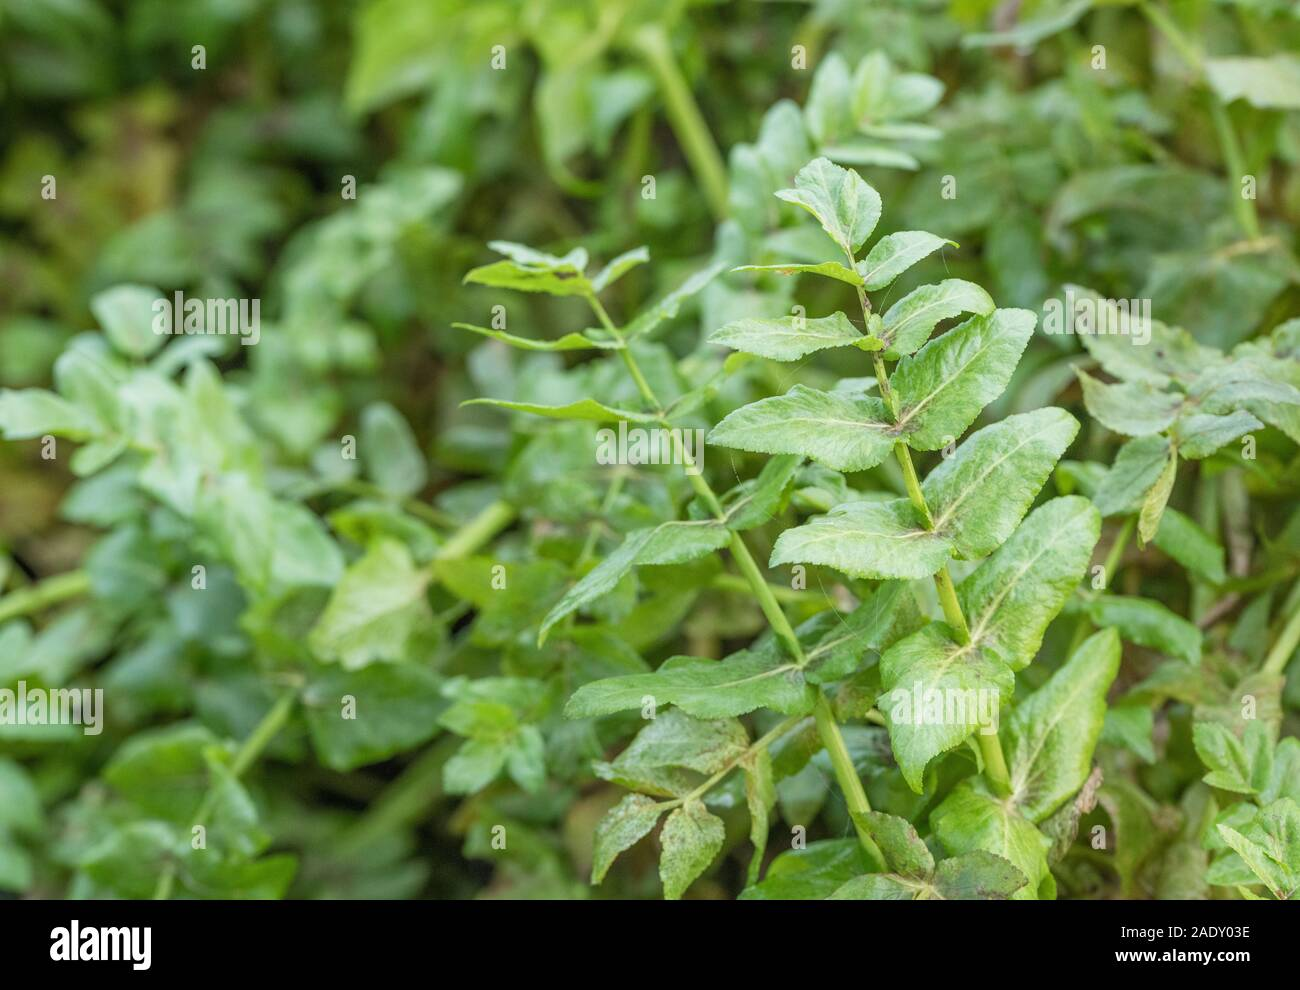 Leaves of drainage channel aquatic weed. Thought to be Lesser Water-Parsnip / Berula erecta. Obstruction concept, blockage, aquatic plants UK Stock Photo